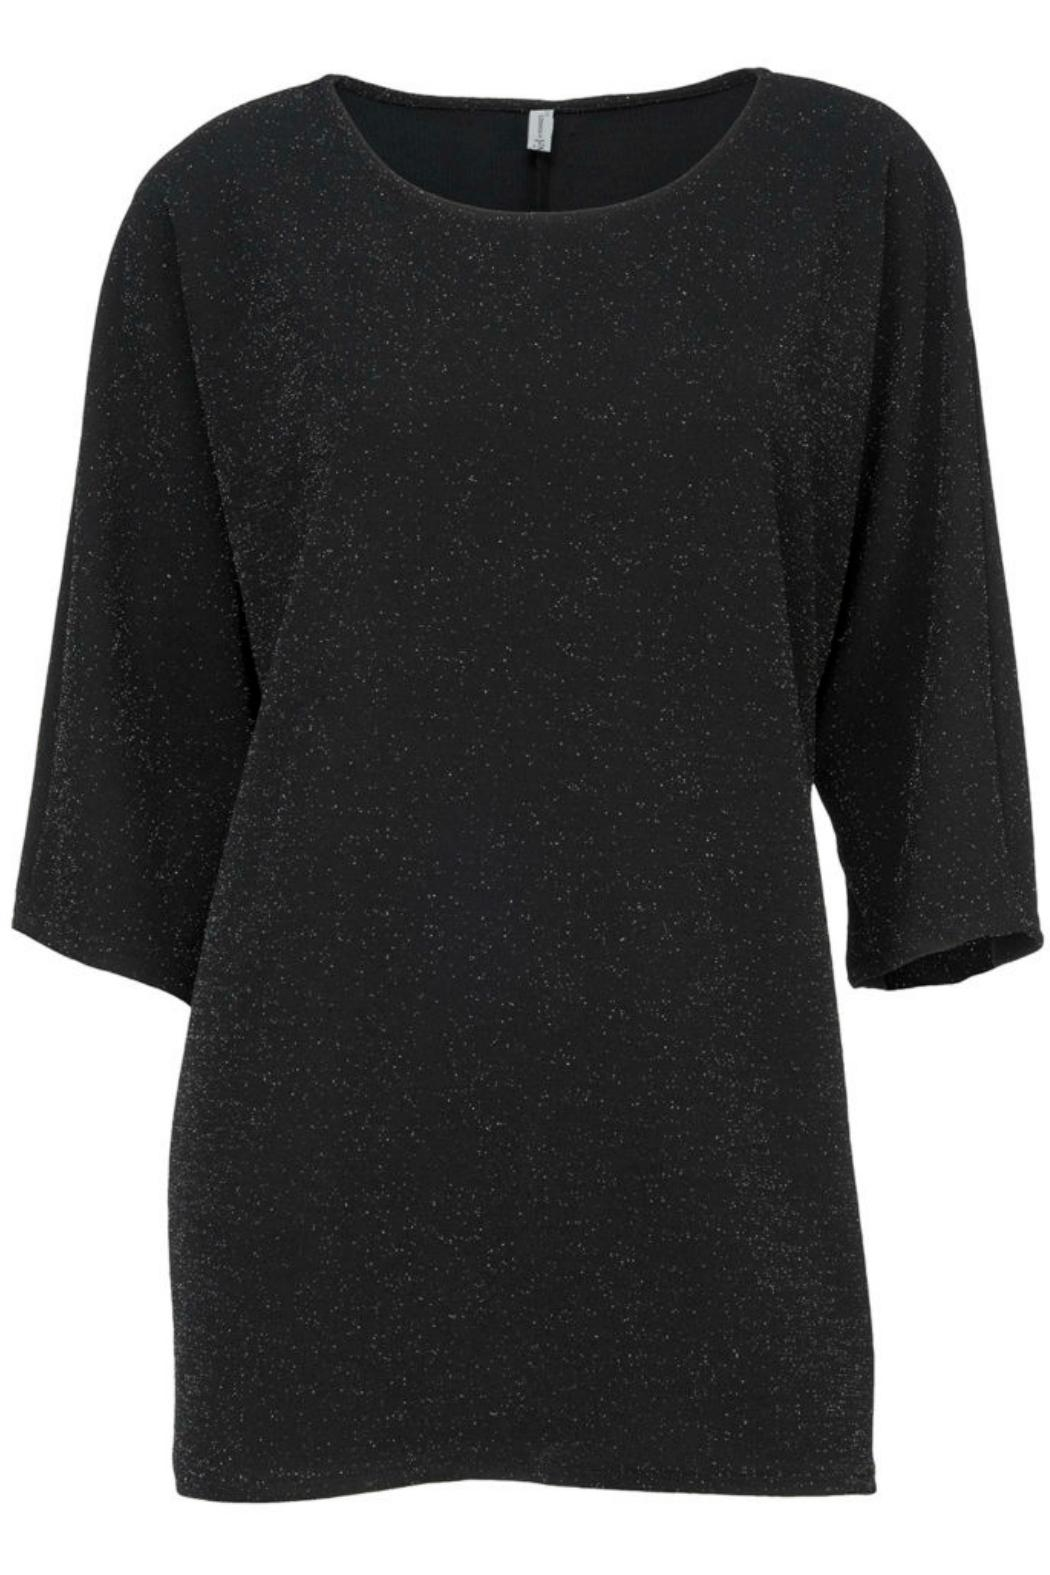 Arianna Lurex Batwing Top - Front Cropped Image